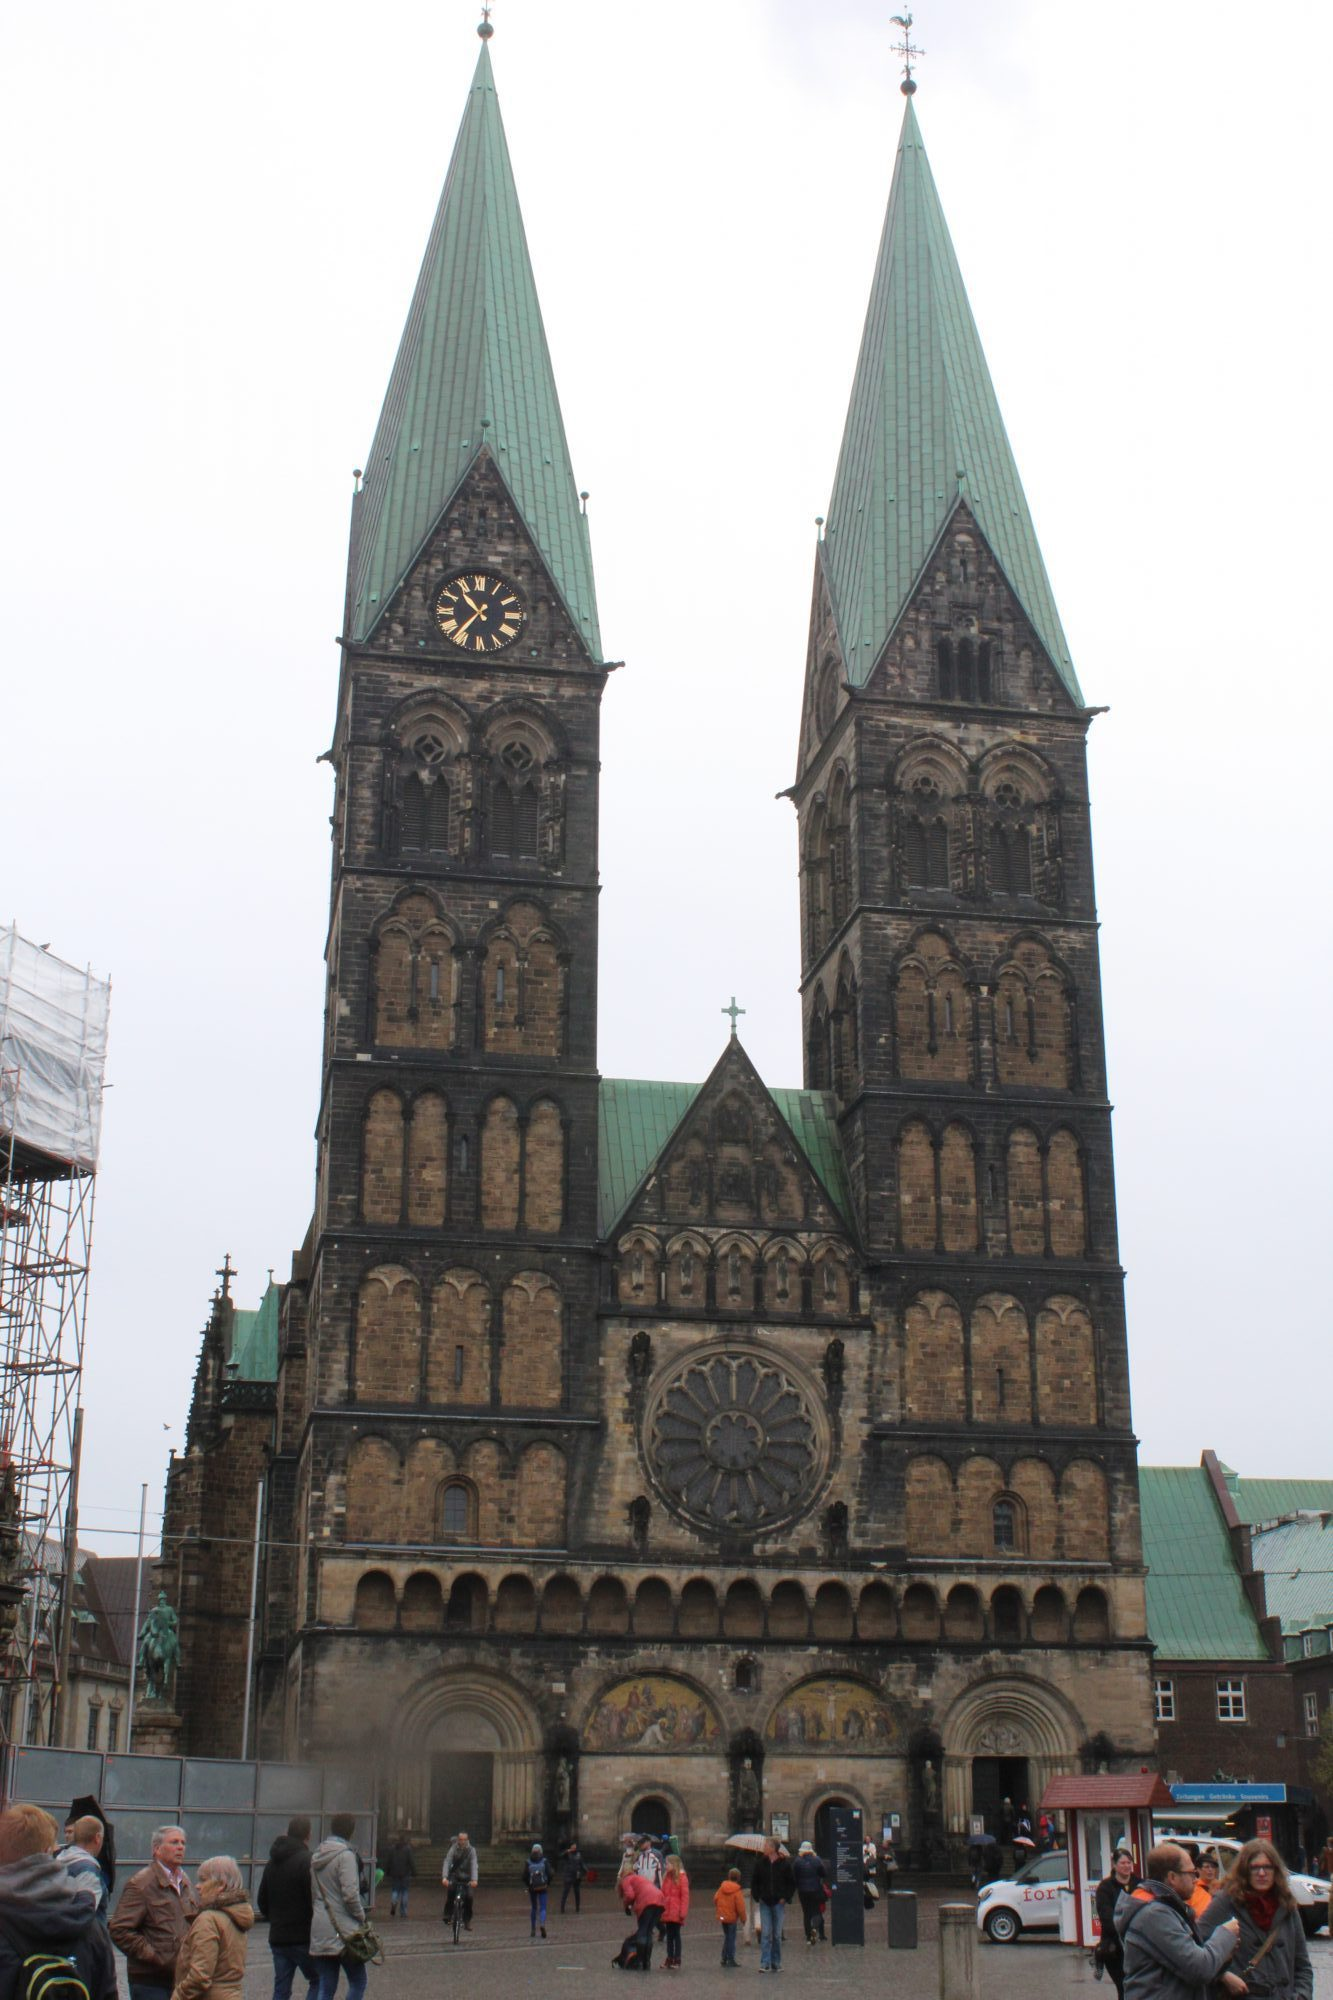 St. Petri Dom The Fairy-Tale Road, St Petri Dom in Bremen | Bremen, Cathedrals and Saints